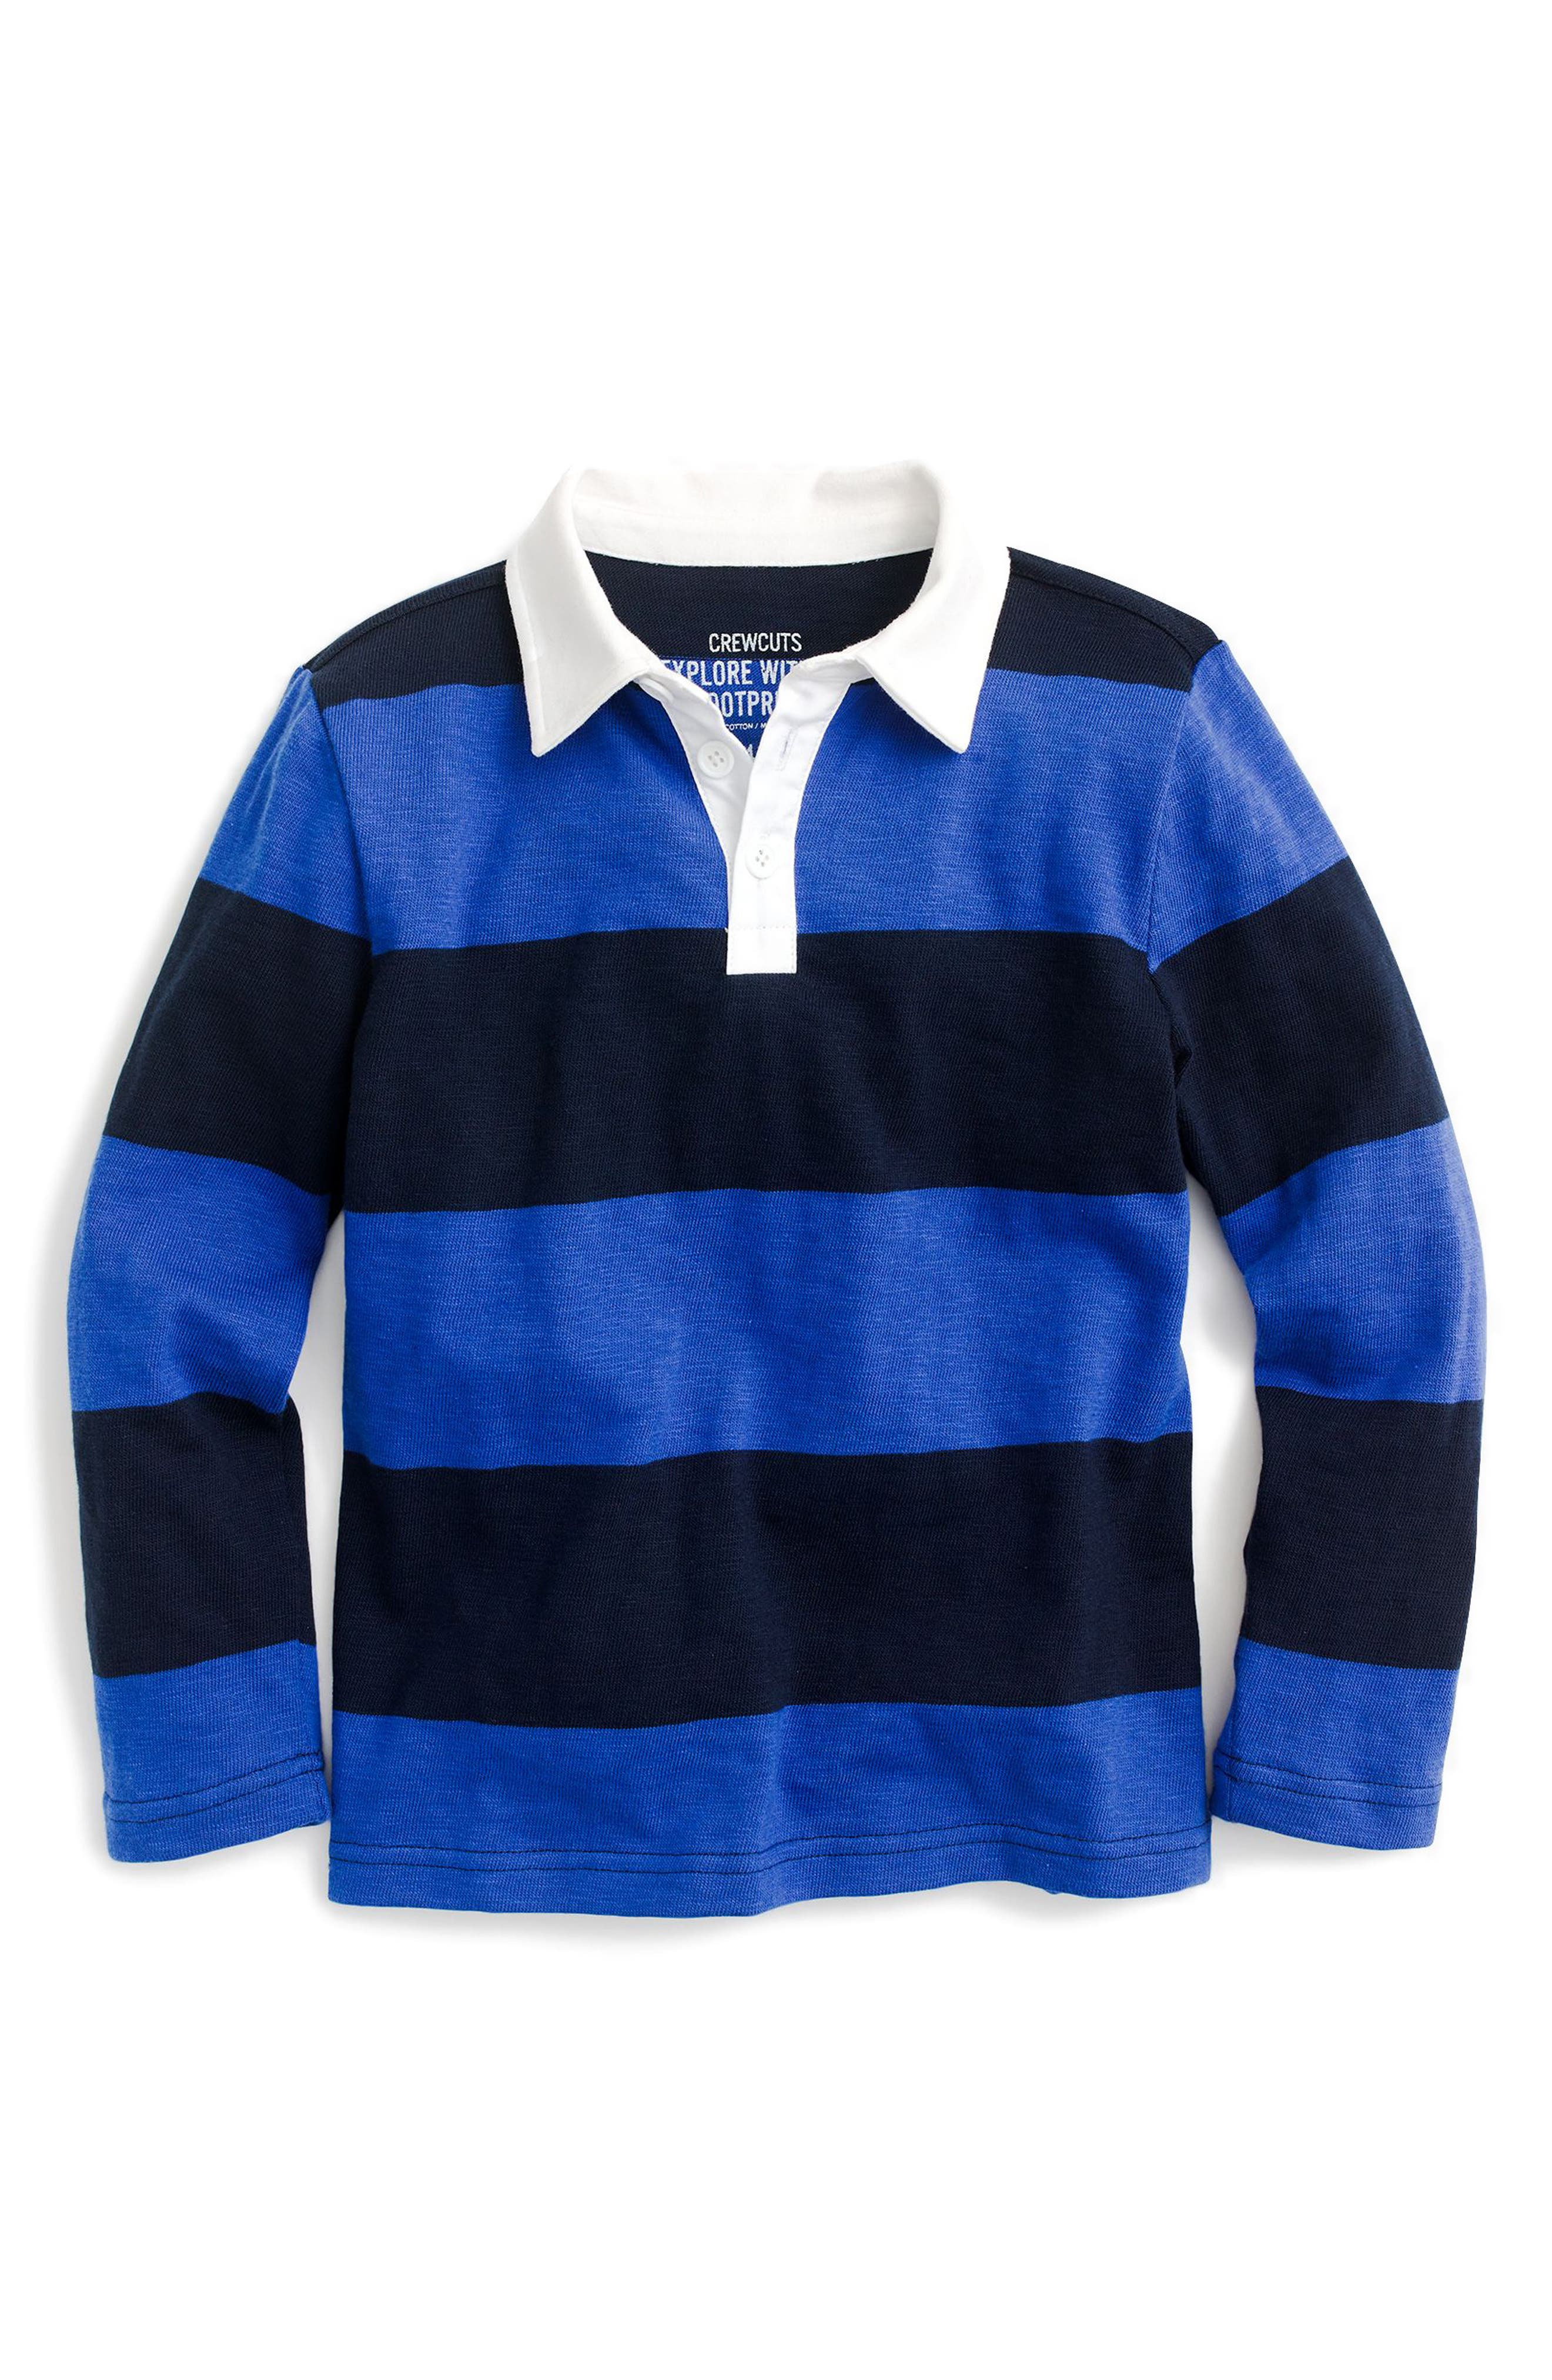 Alternate Image 1 Selected - crewcuts by J.Crew Striped Rugby Shirt (Toddler Boys, Little Boys & Big Boys)